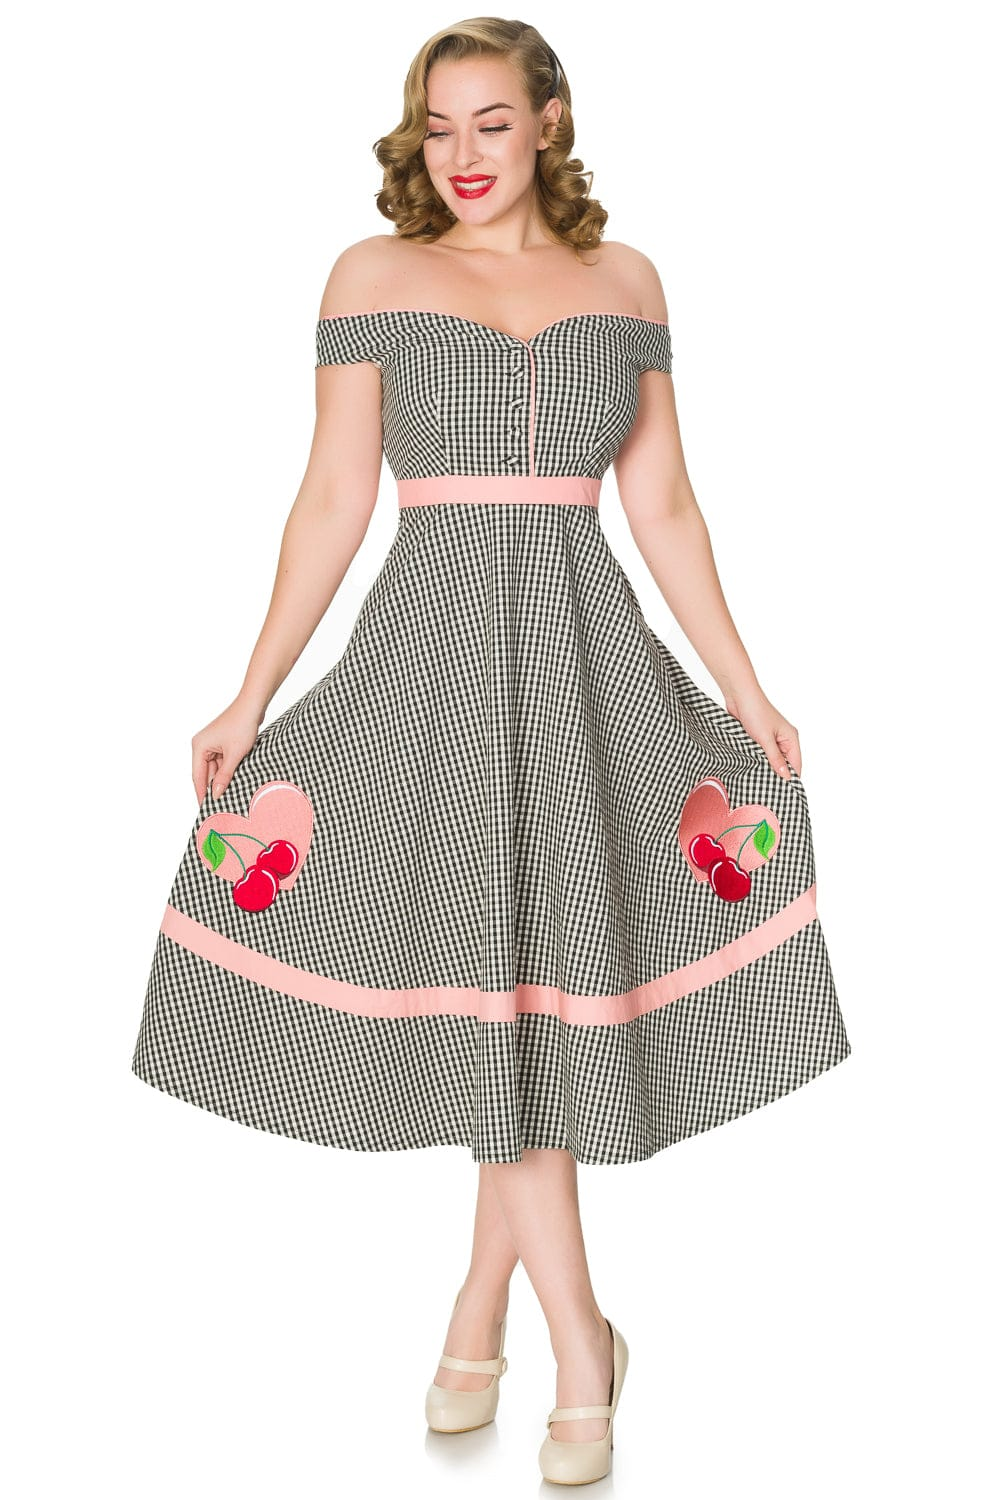 Heartbreaker Swing Dress